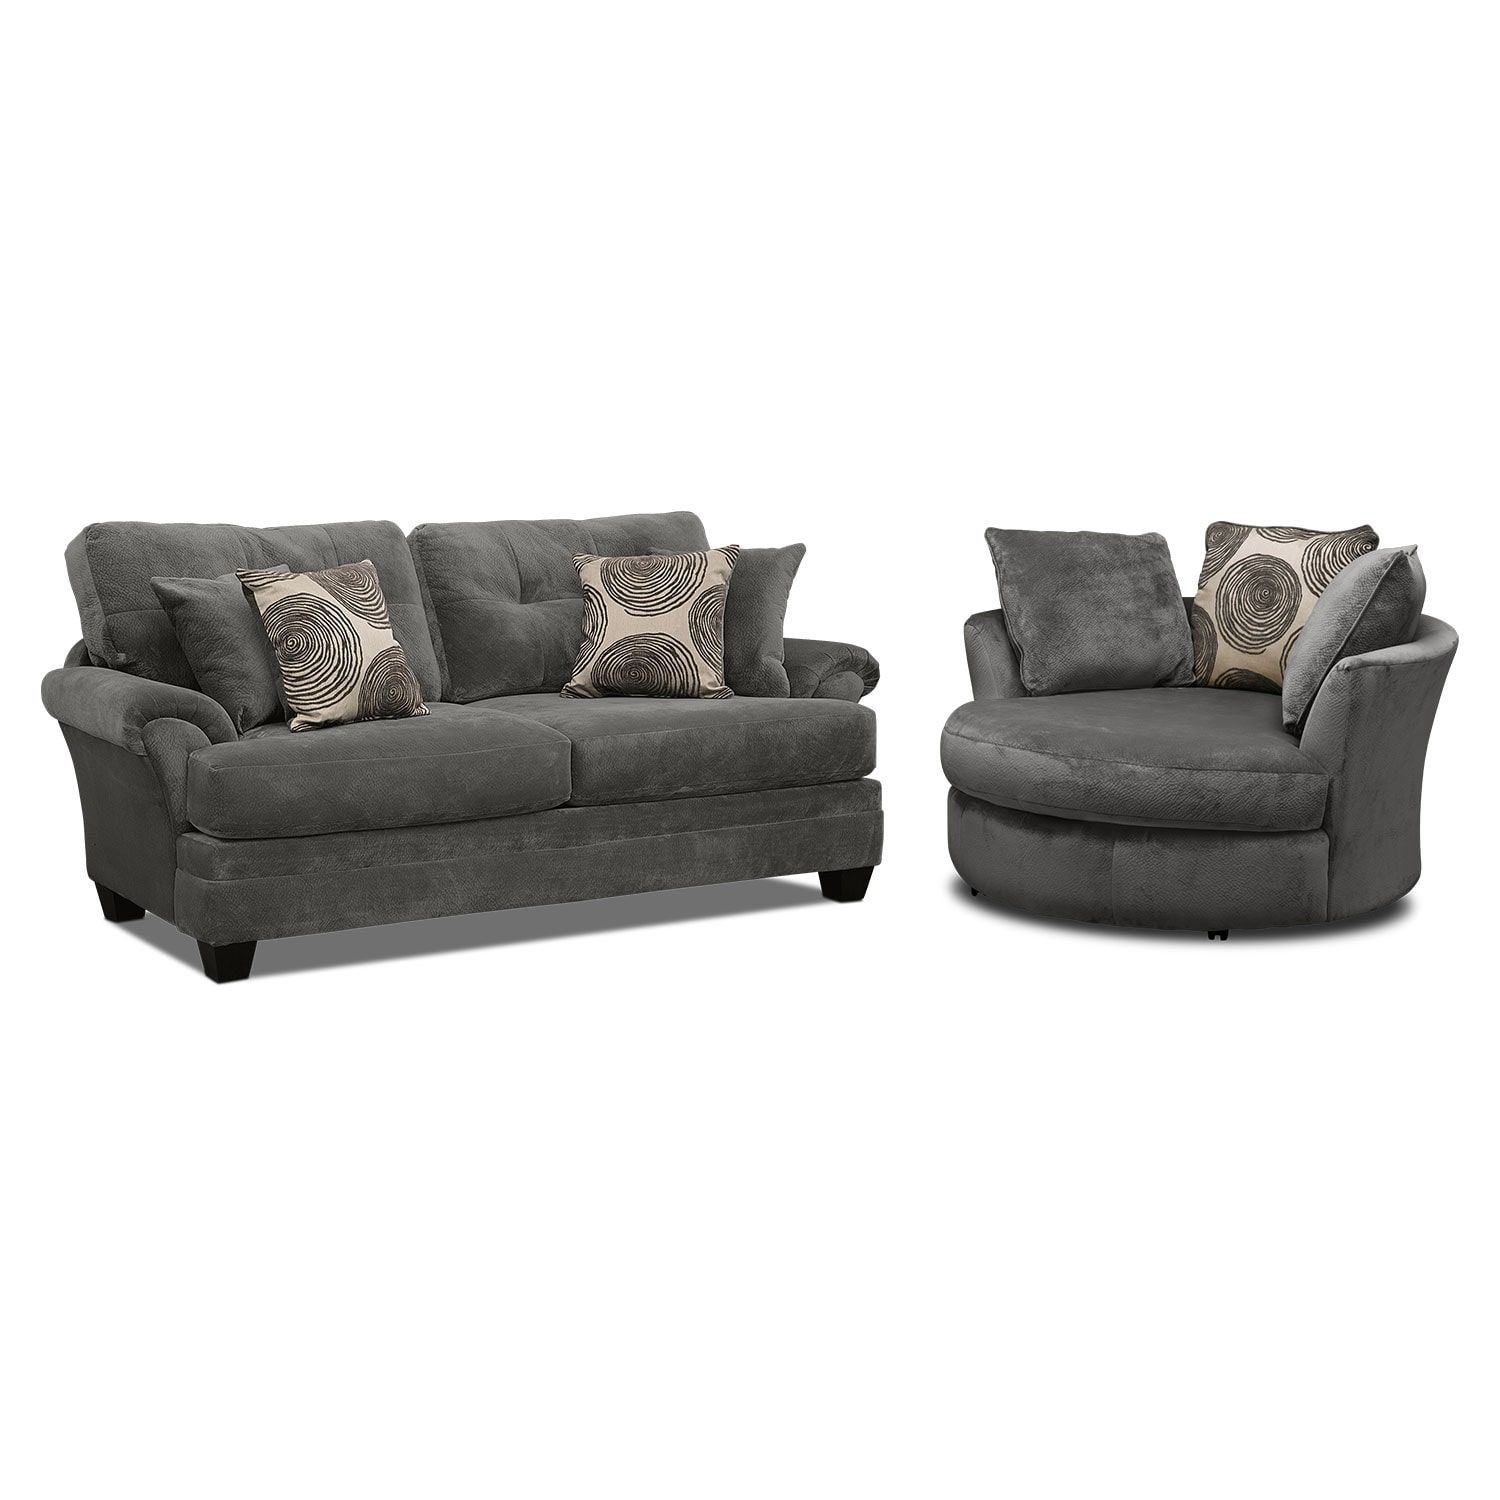 Superb Living Room Furniture   Cordelle Sofa And Swivel Chair Set   Gray